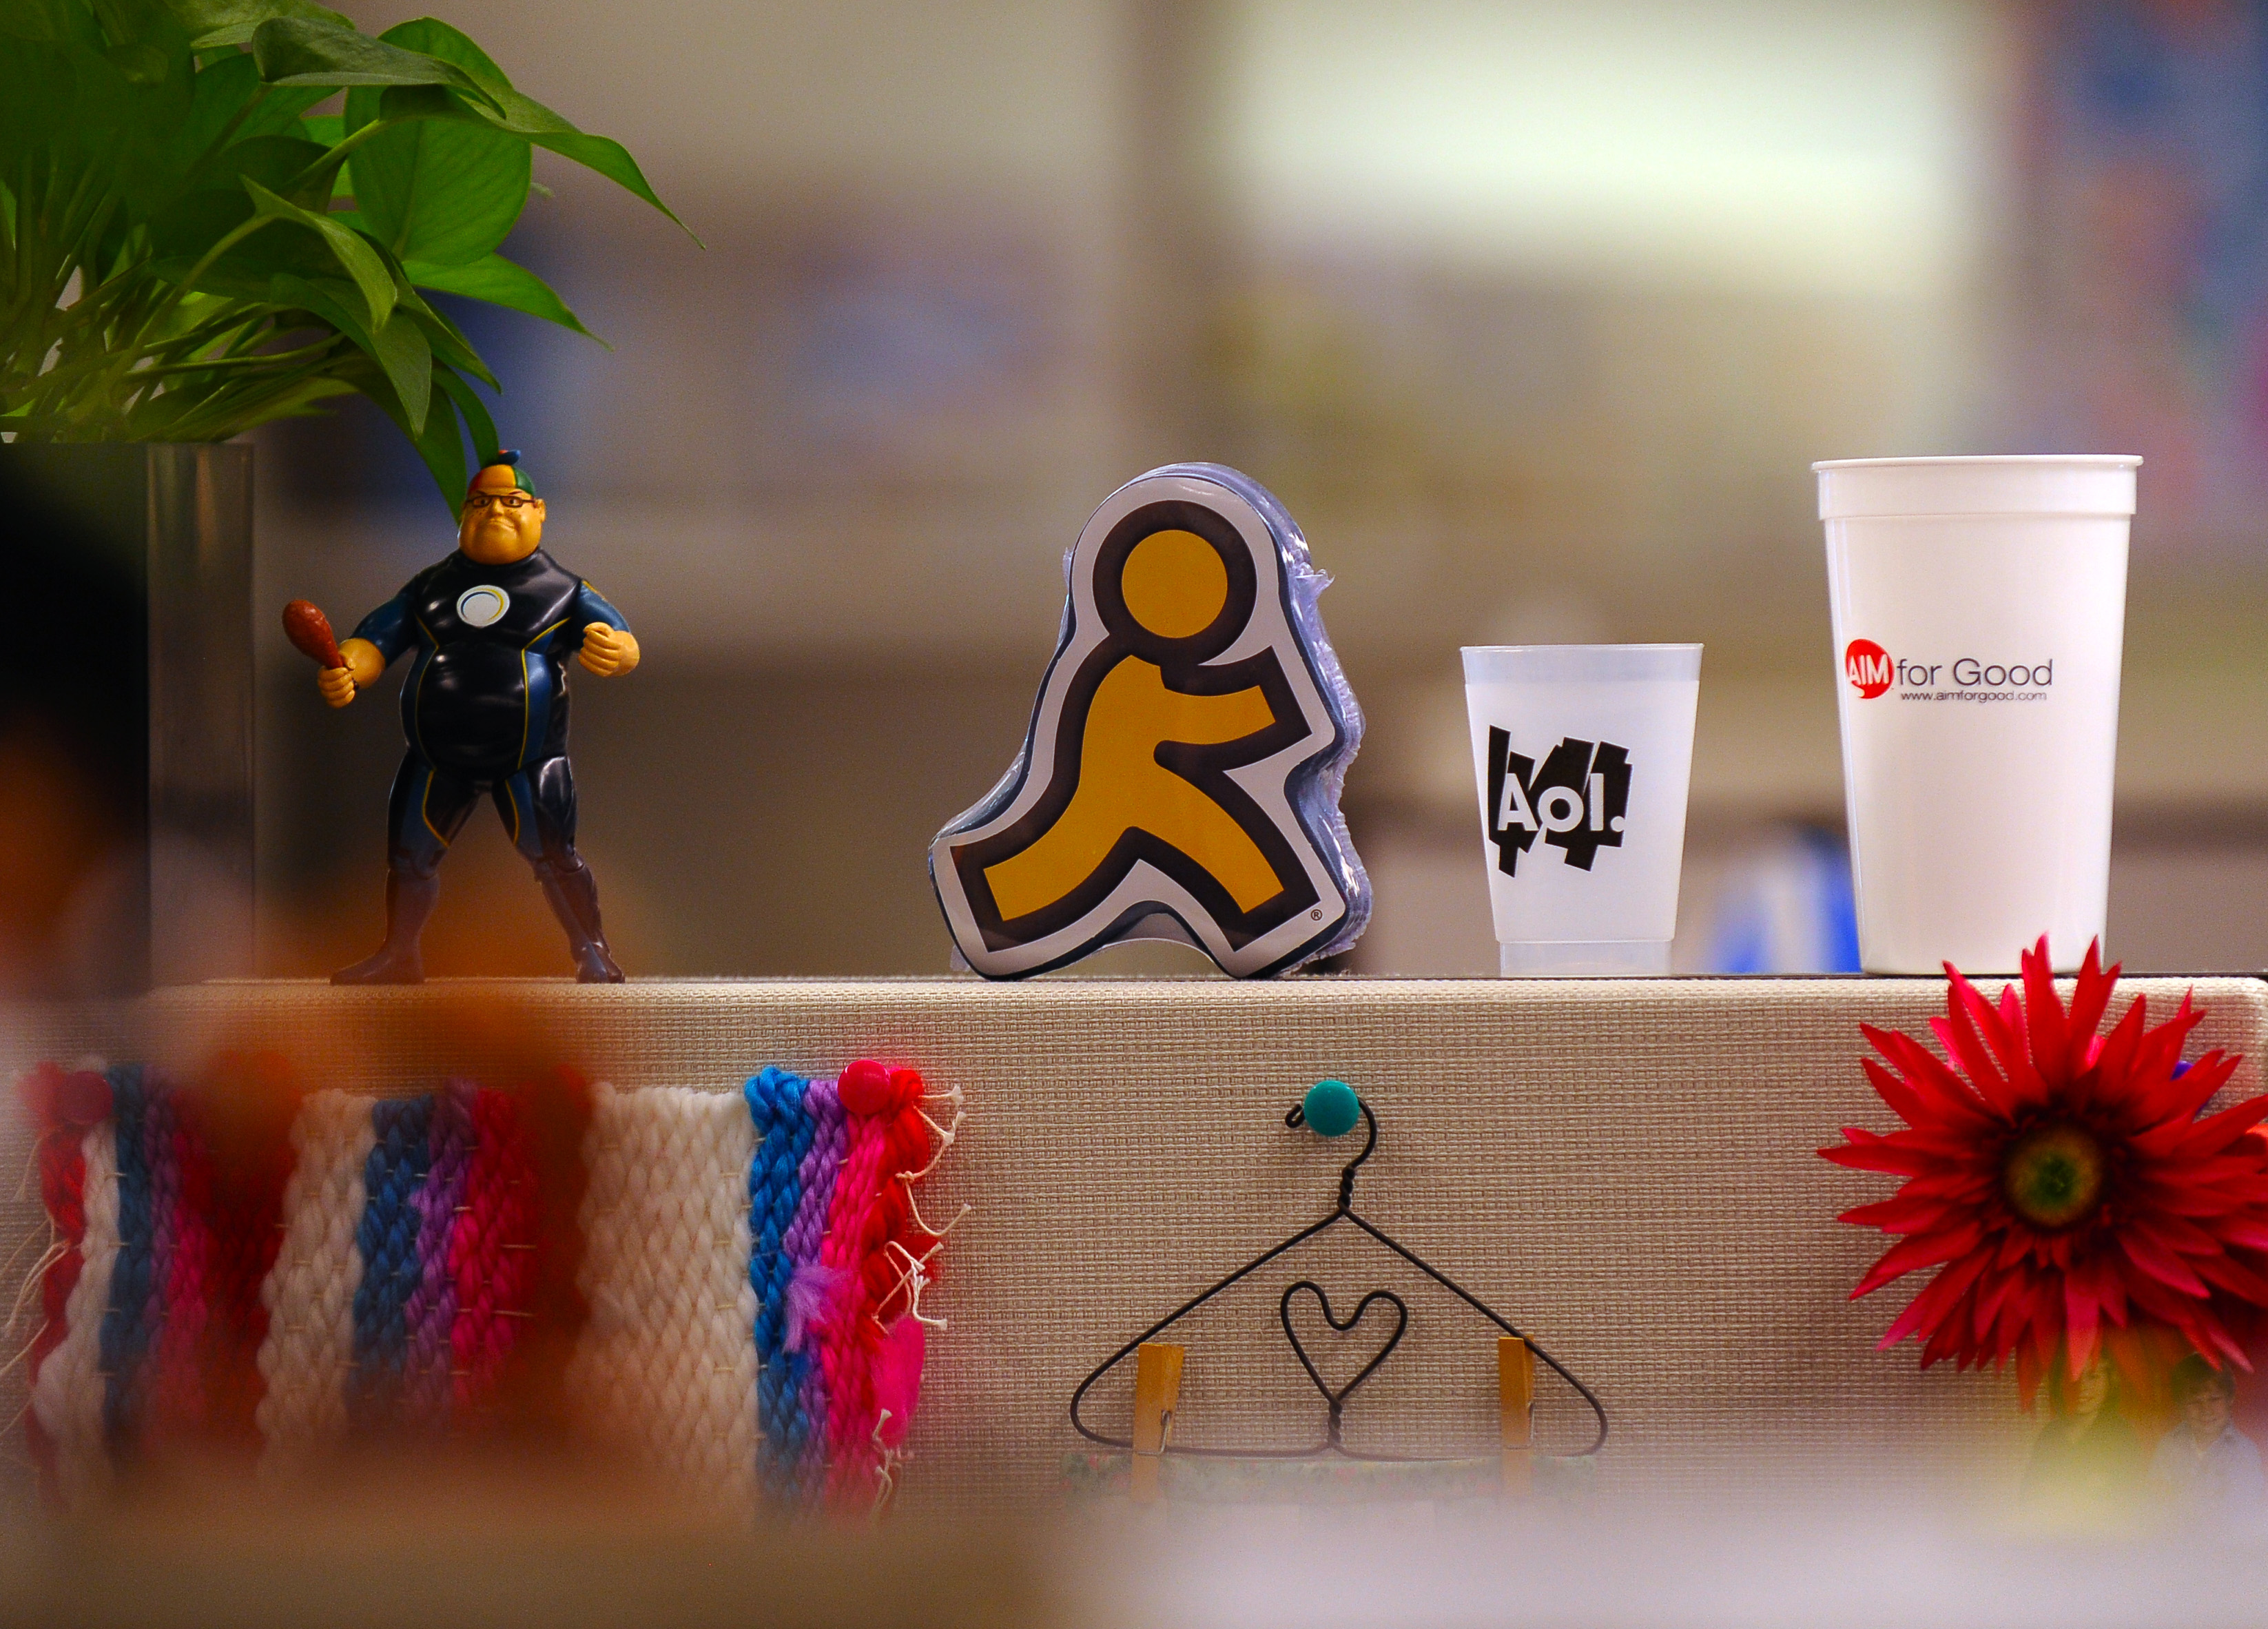 The original AOL logo figurine is displayed at an employee's desk at AOL headquarters on May 19, 2010 in Dulles, VA.